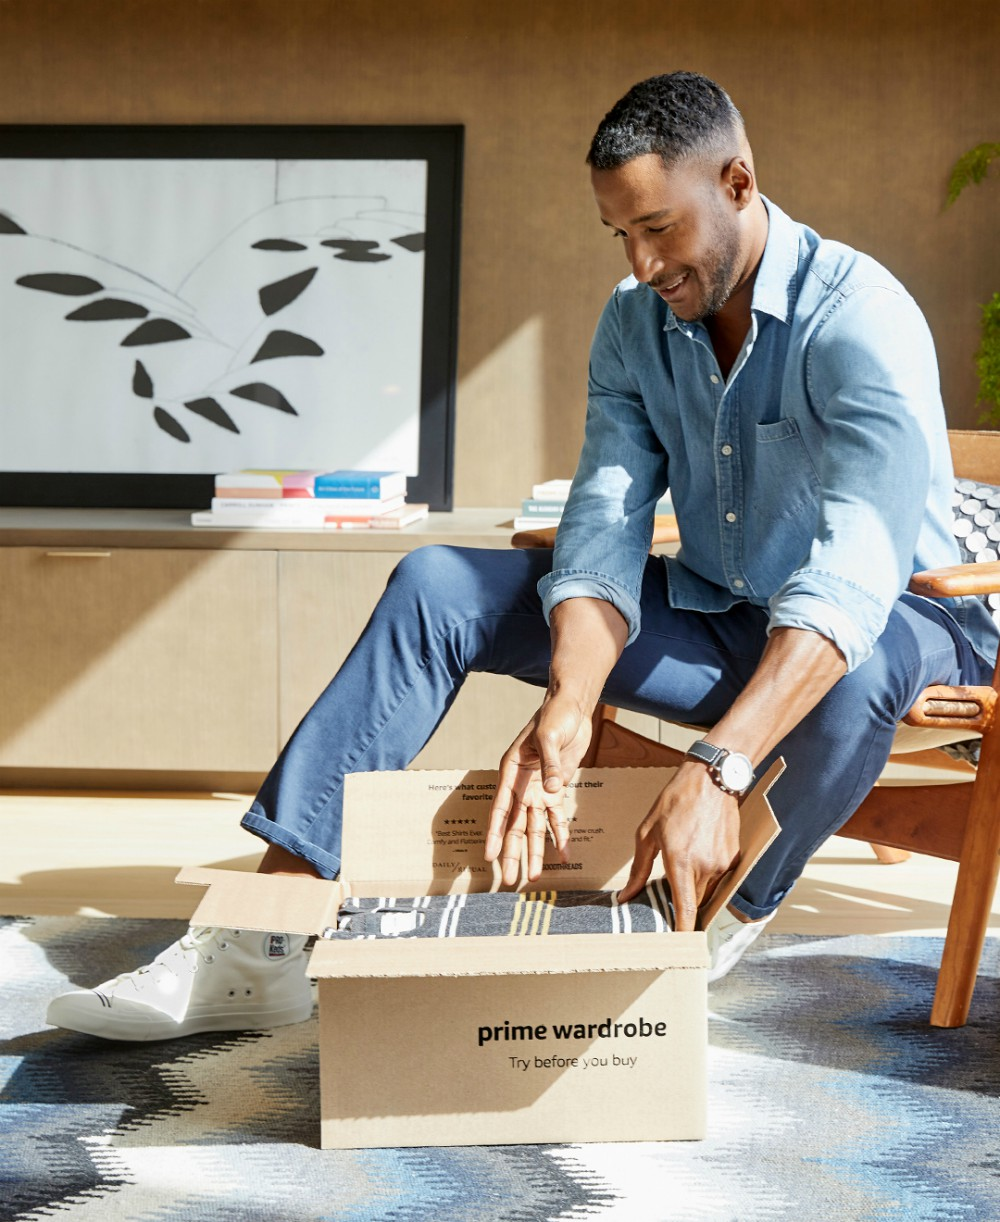 Amazon expanded Personal Shopper by Prime Wardrobe to include men's fashion, launching ahead of its October 13-14 Prime Day shopping event.